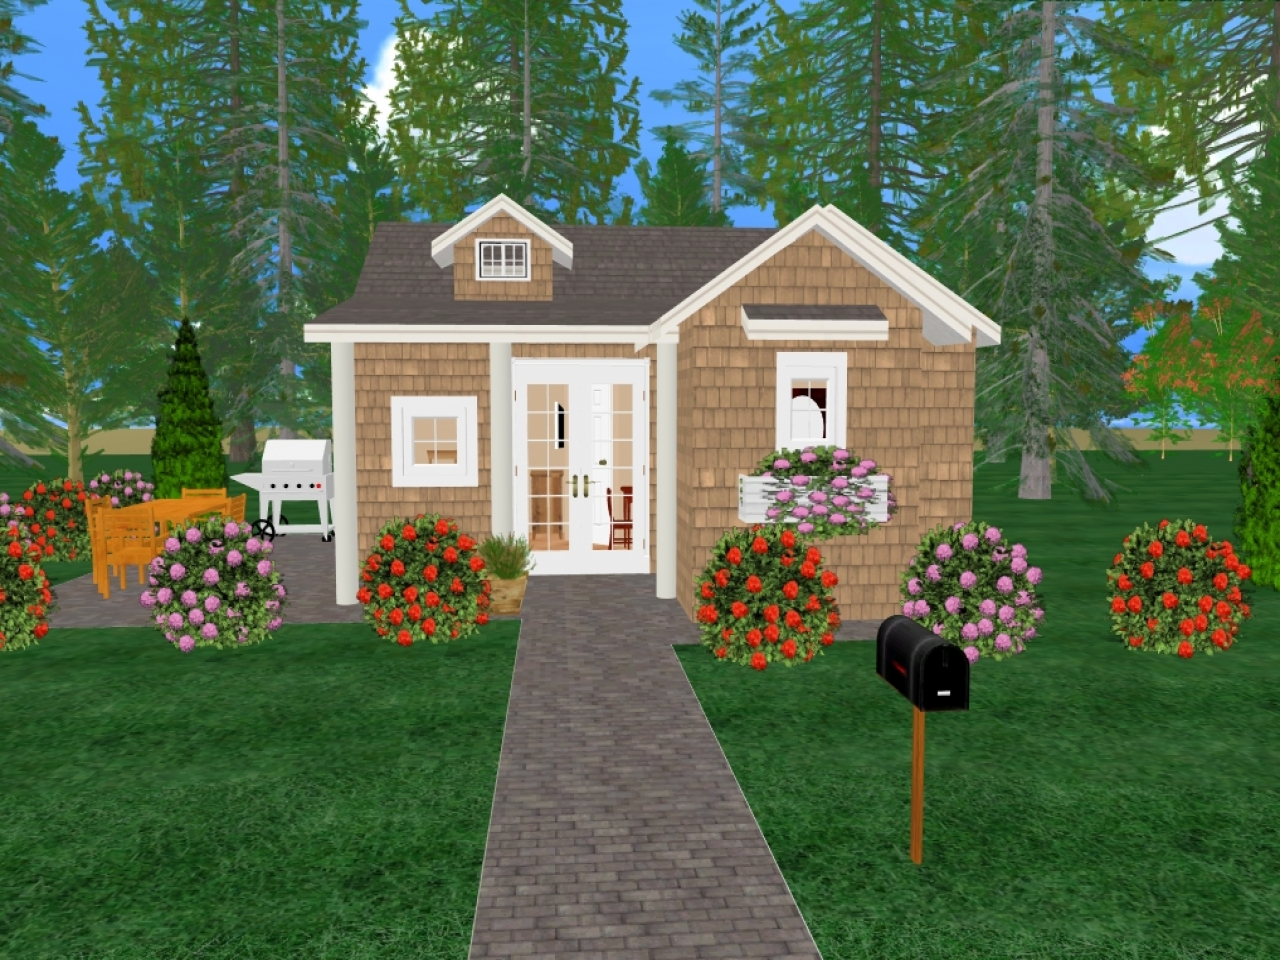 Small house plans concrete cozy small house plans cozy for Cozy home plans